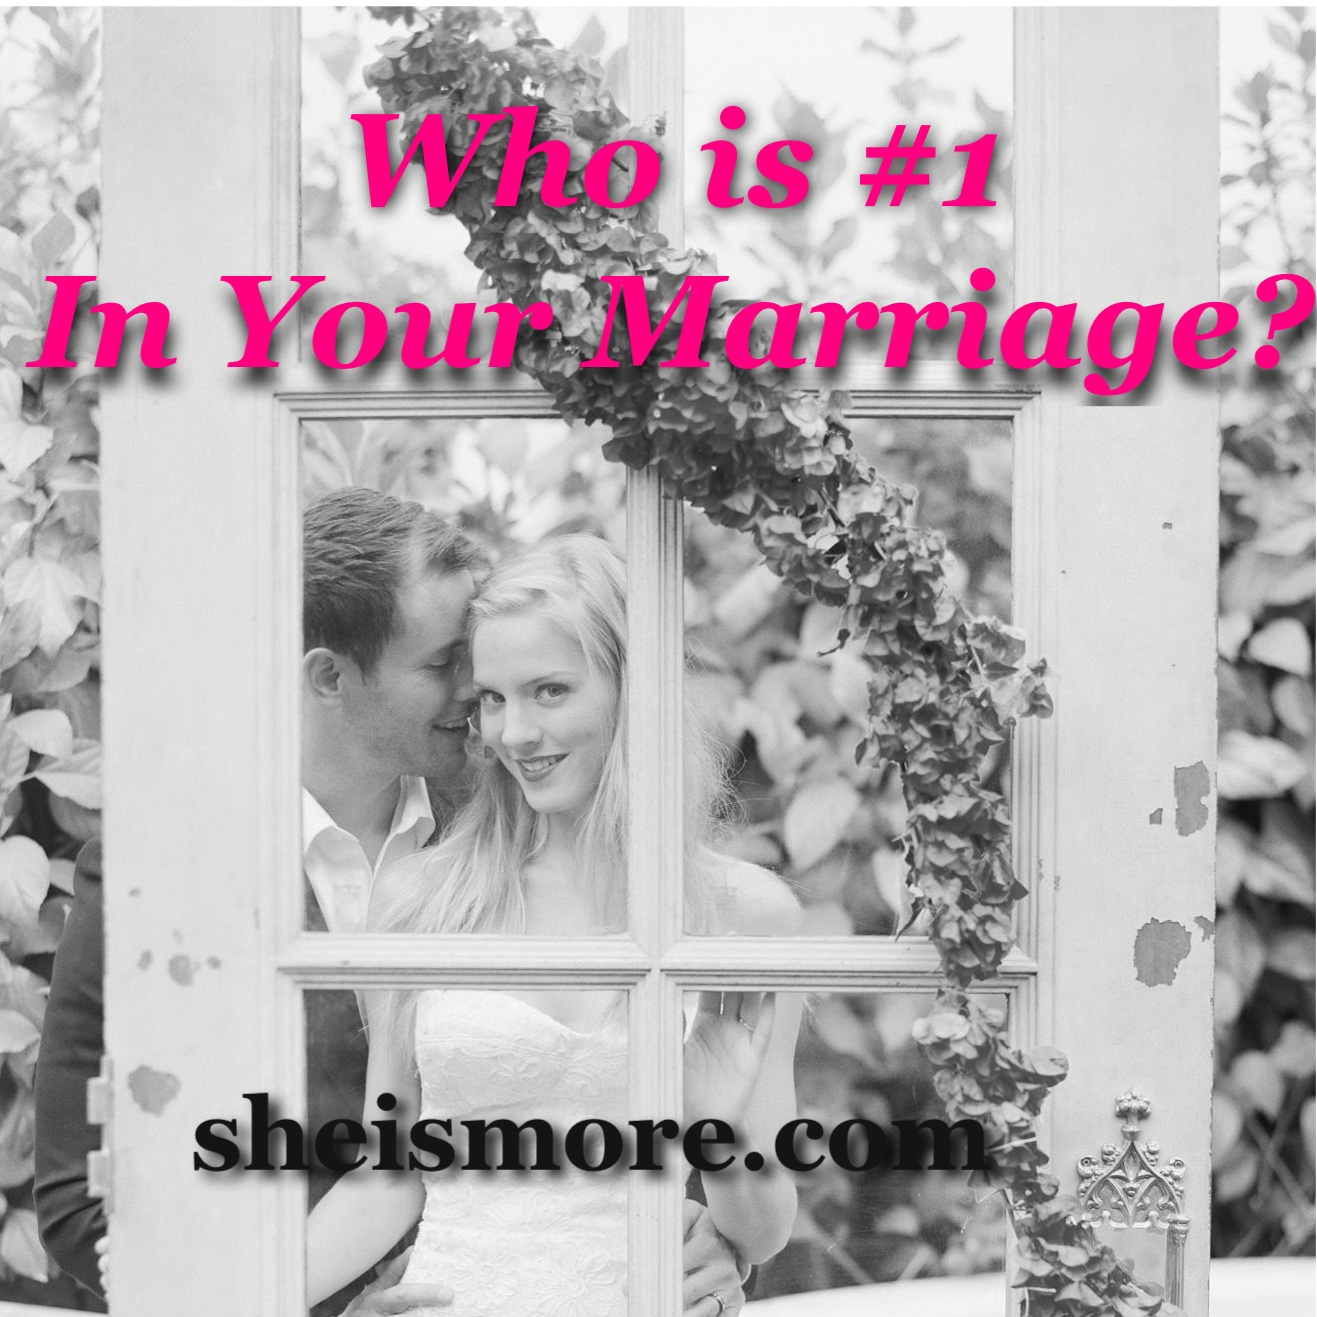 Who is #1 in Your Marriage? sheismore.com